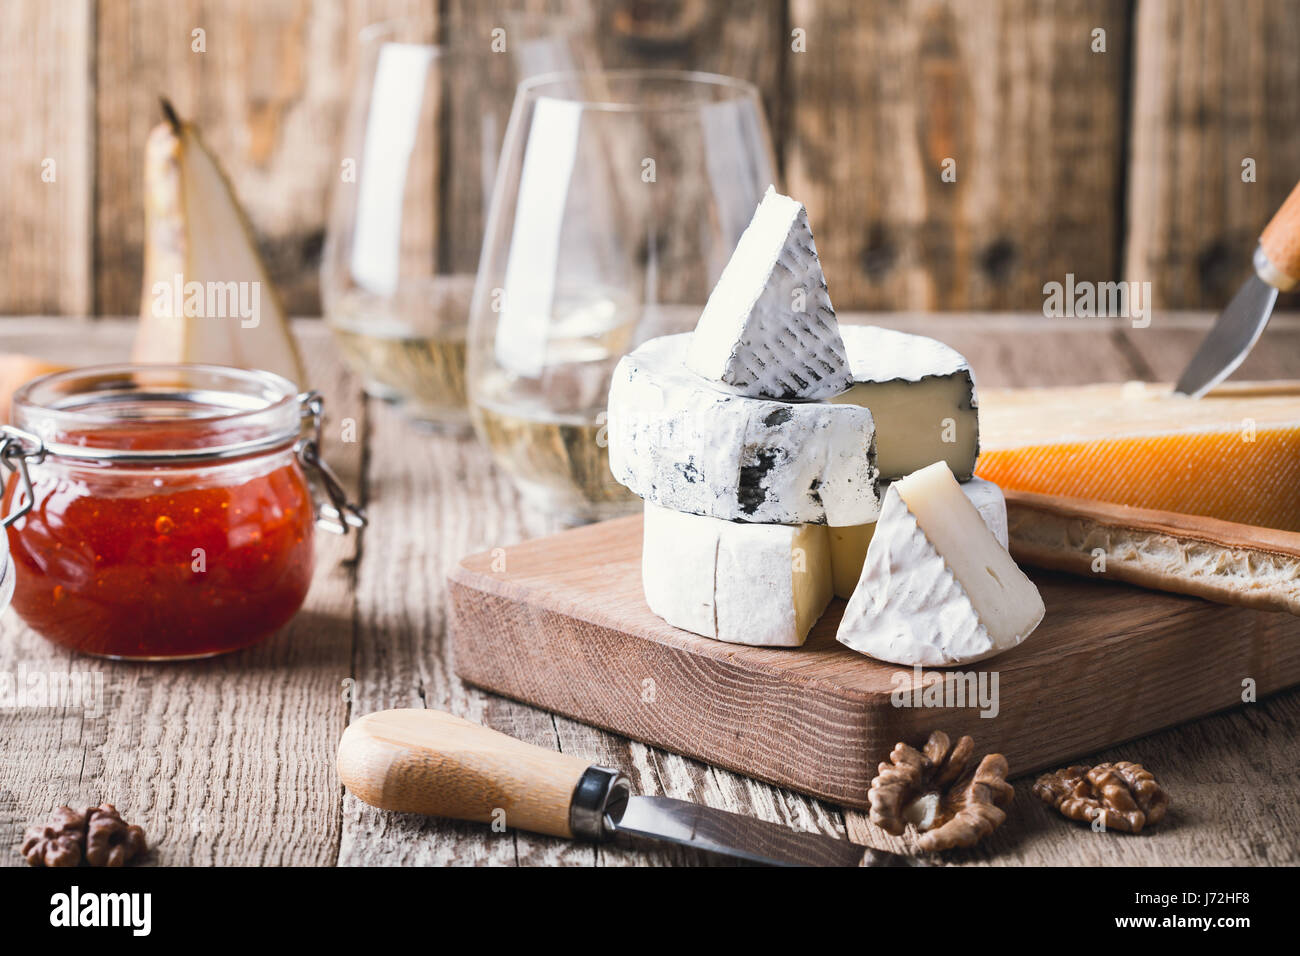 Cheese platter served with white wine, jam and walnuts on wooden board on rustic table Stock Photo